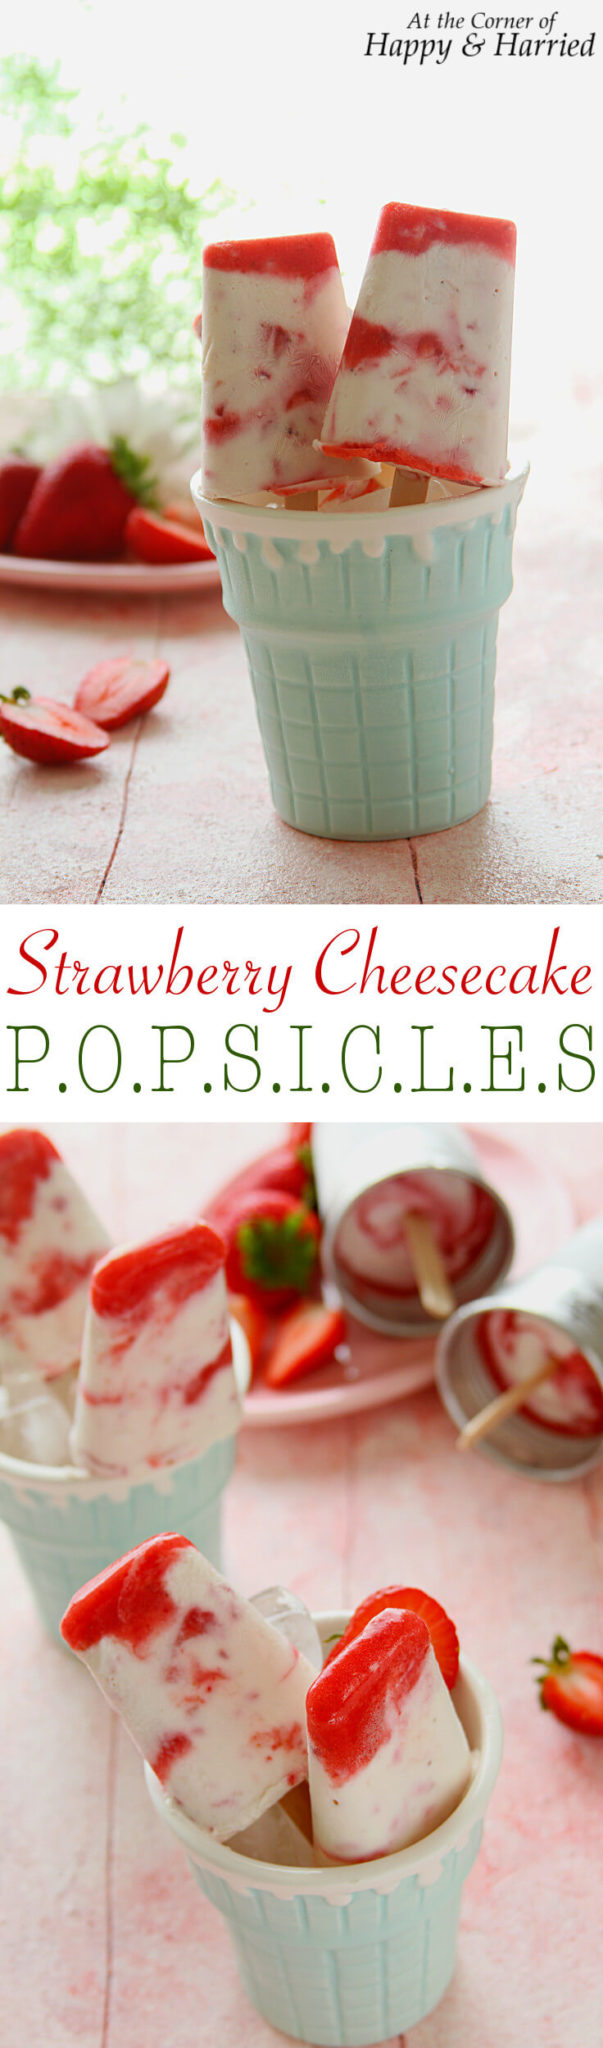 STRAWBERRY CHEESECAKE POPSICLES - HAPPY&HARRIED